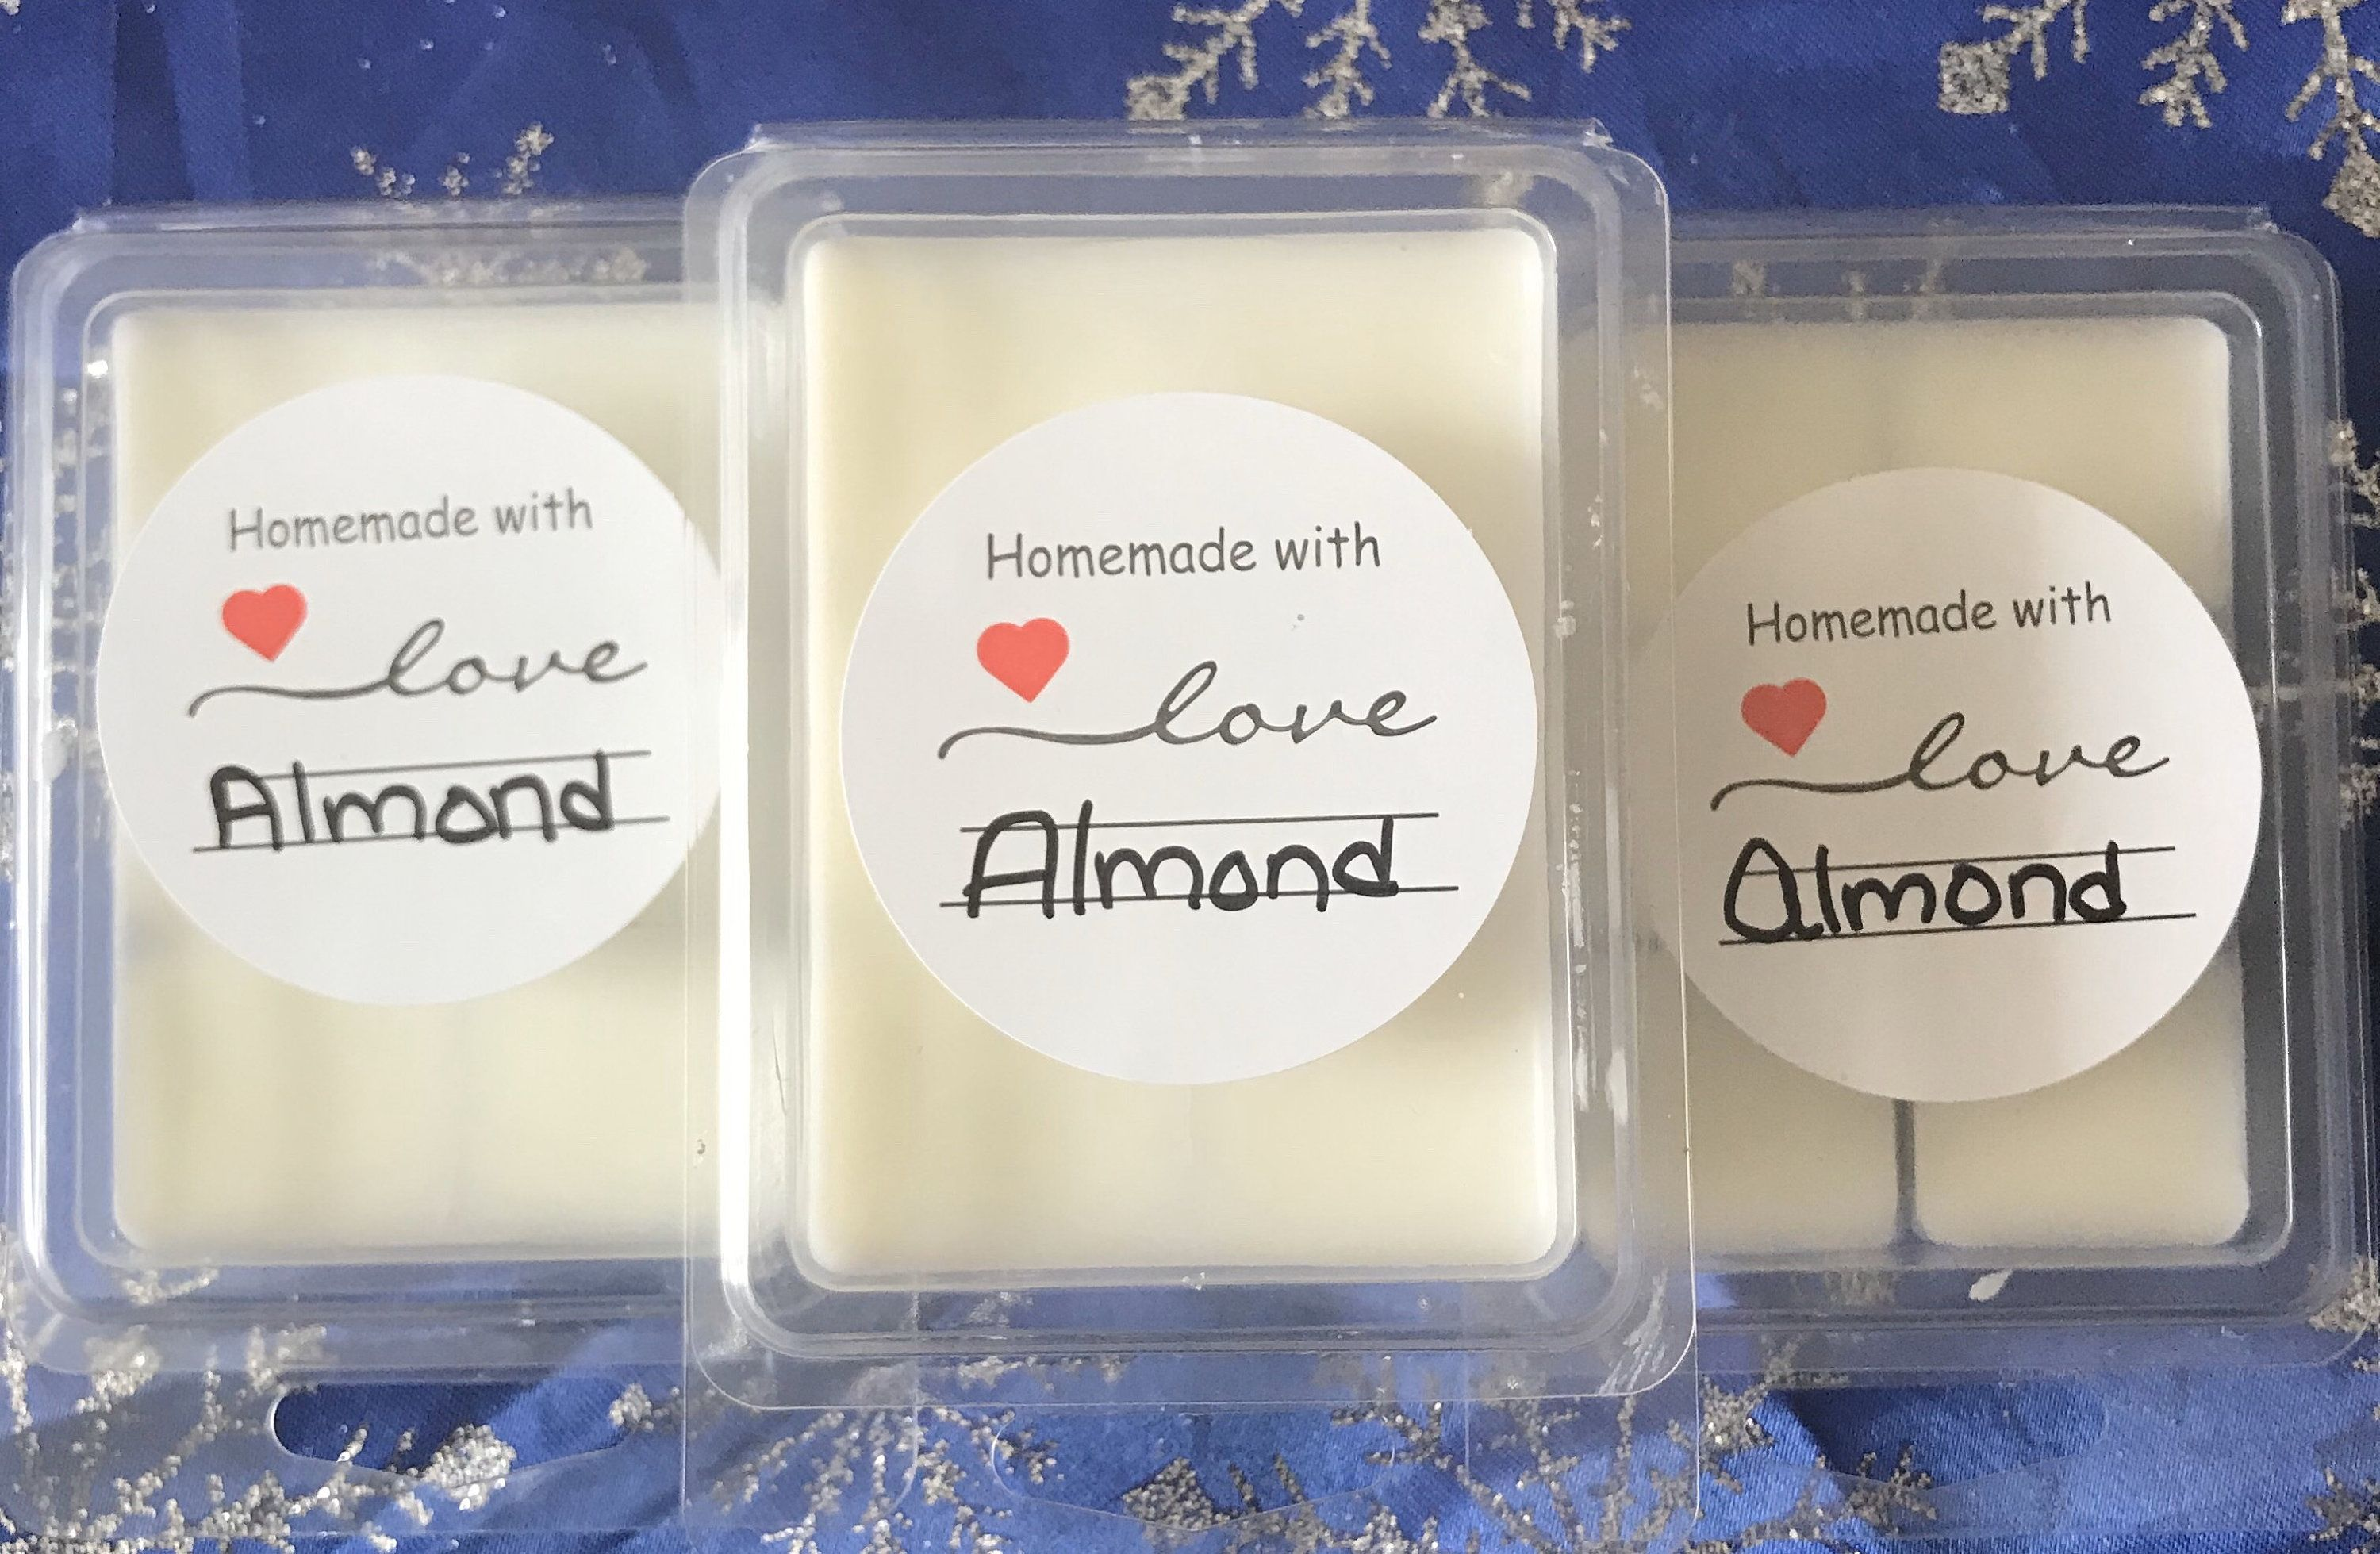 Excited To Share The Latest Addition To My Etsy Shop Almond Soy Wax Melt Https Etsy Me 2ovnofn Candles Tart Almond Frag In 2020 Soy Wax Melts Wax Melts Soy Wax